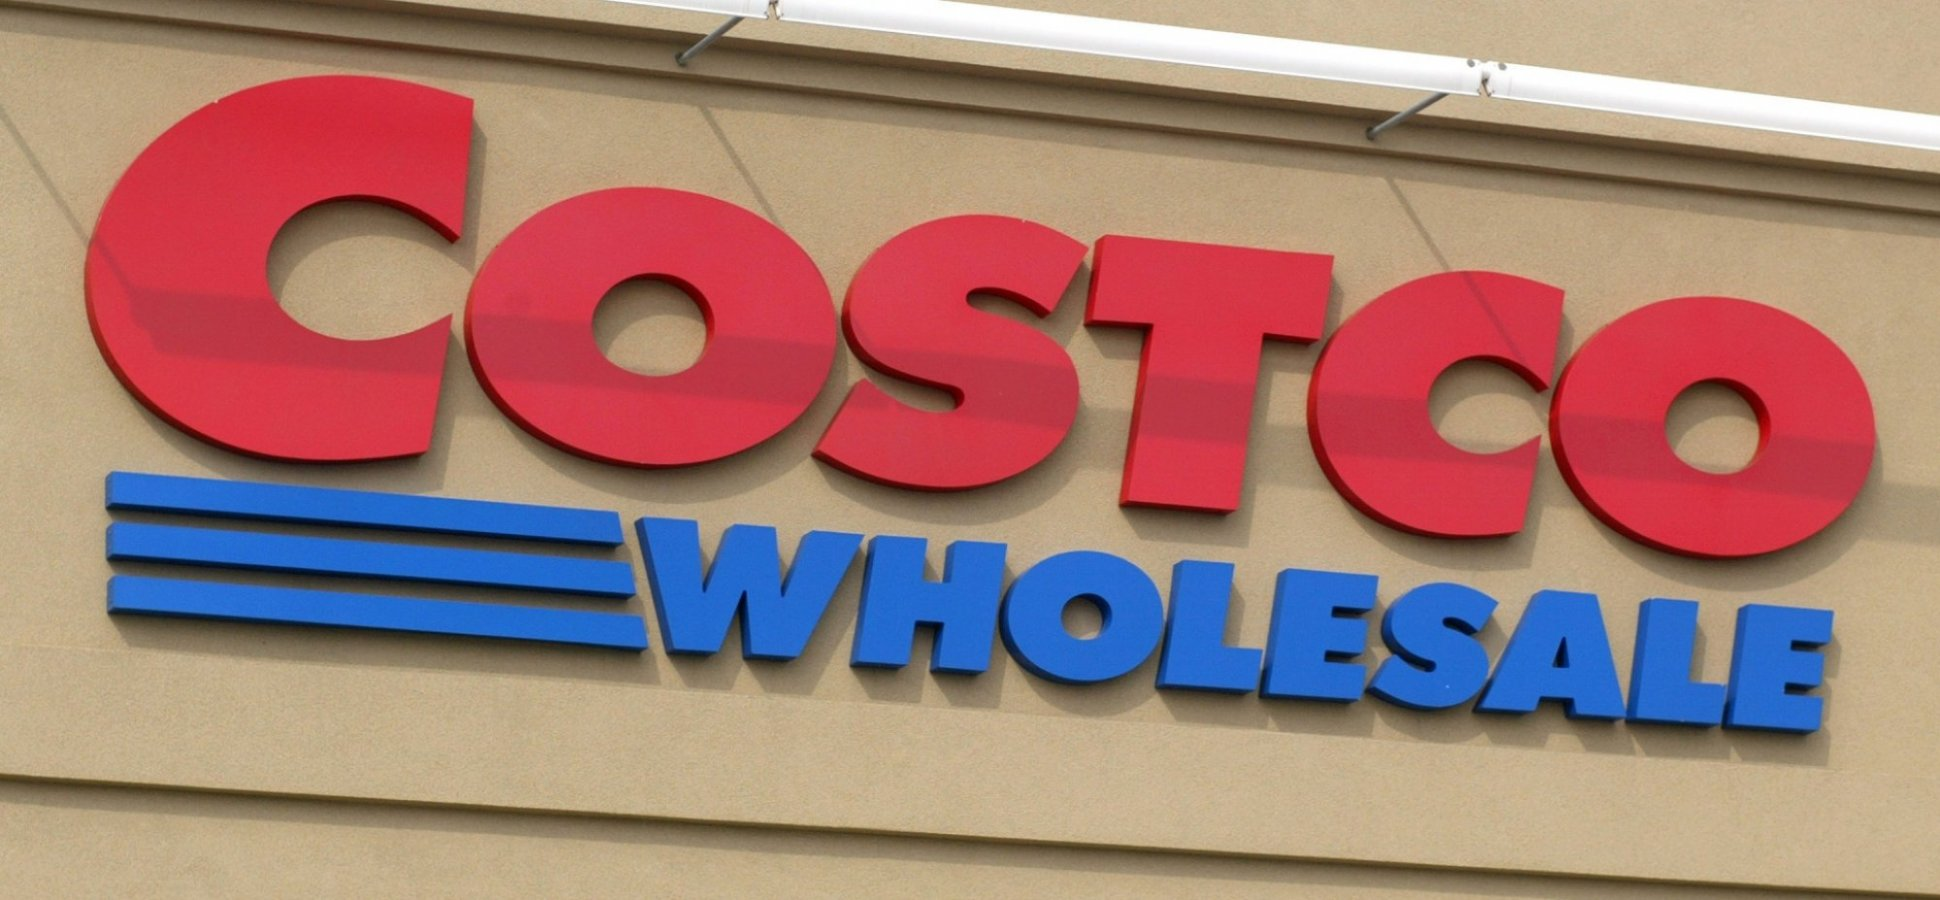 How Does Costco Compete With Amazon? By Doing 4 Things Incredibly Well